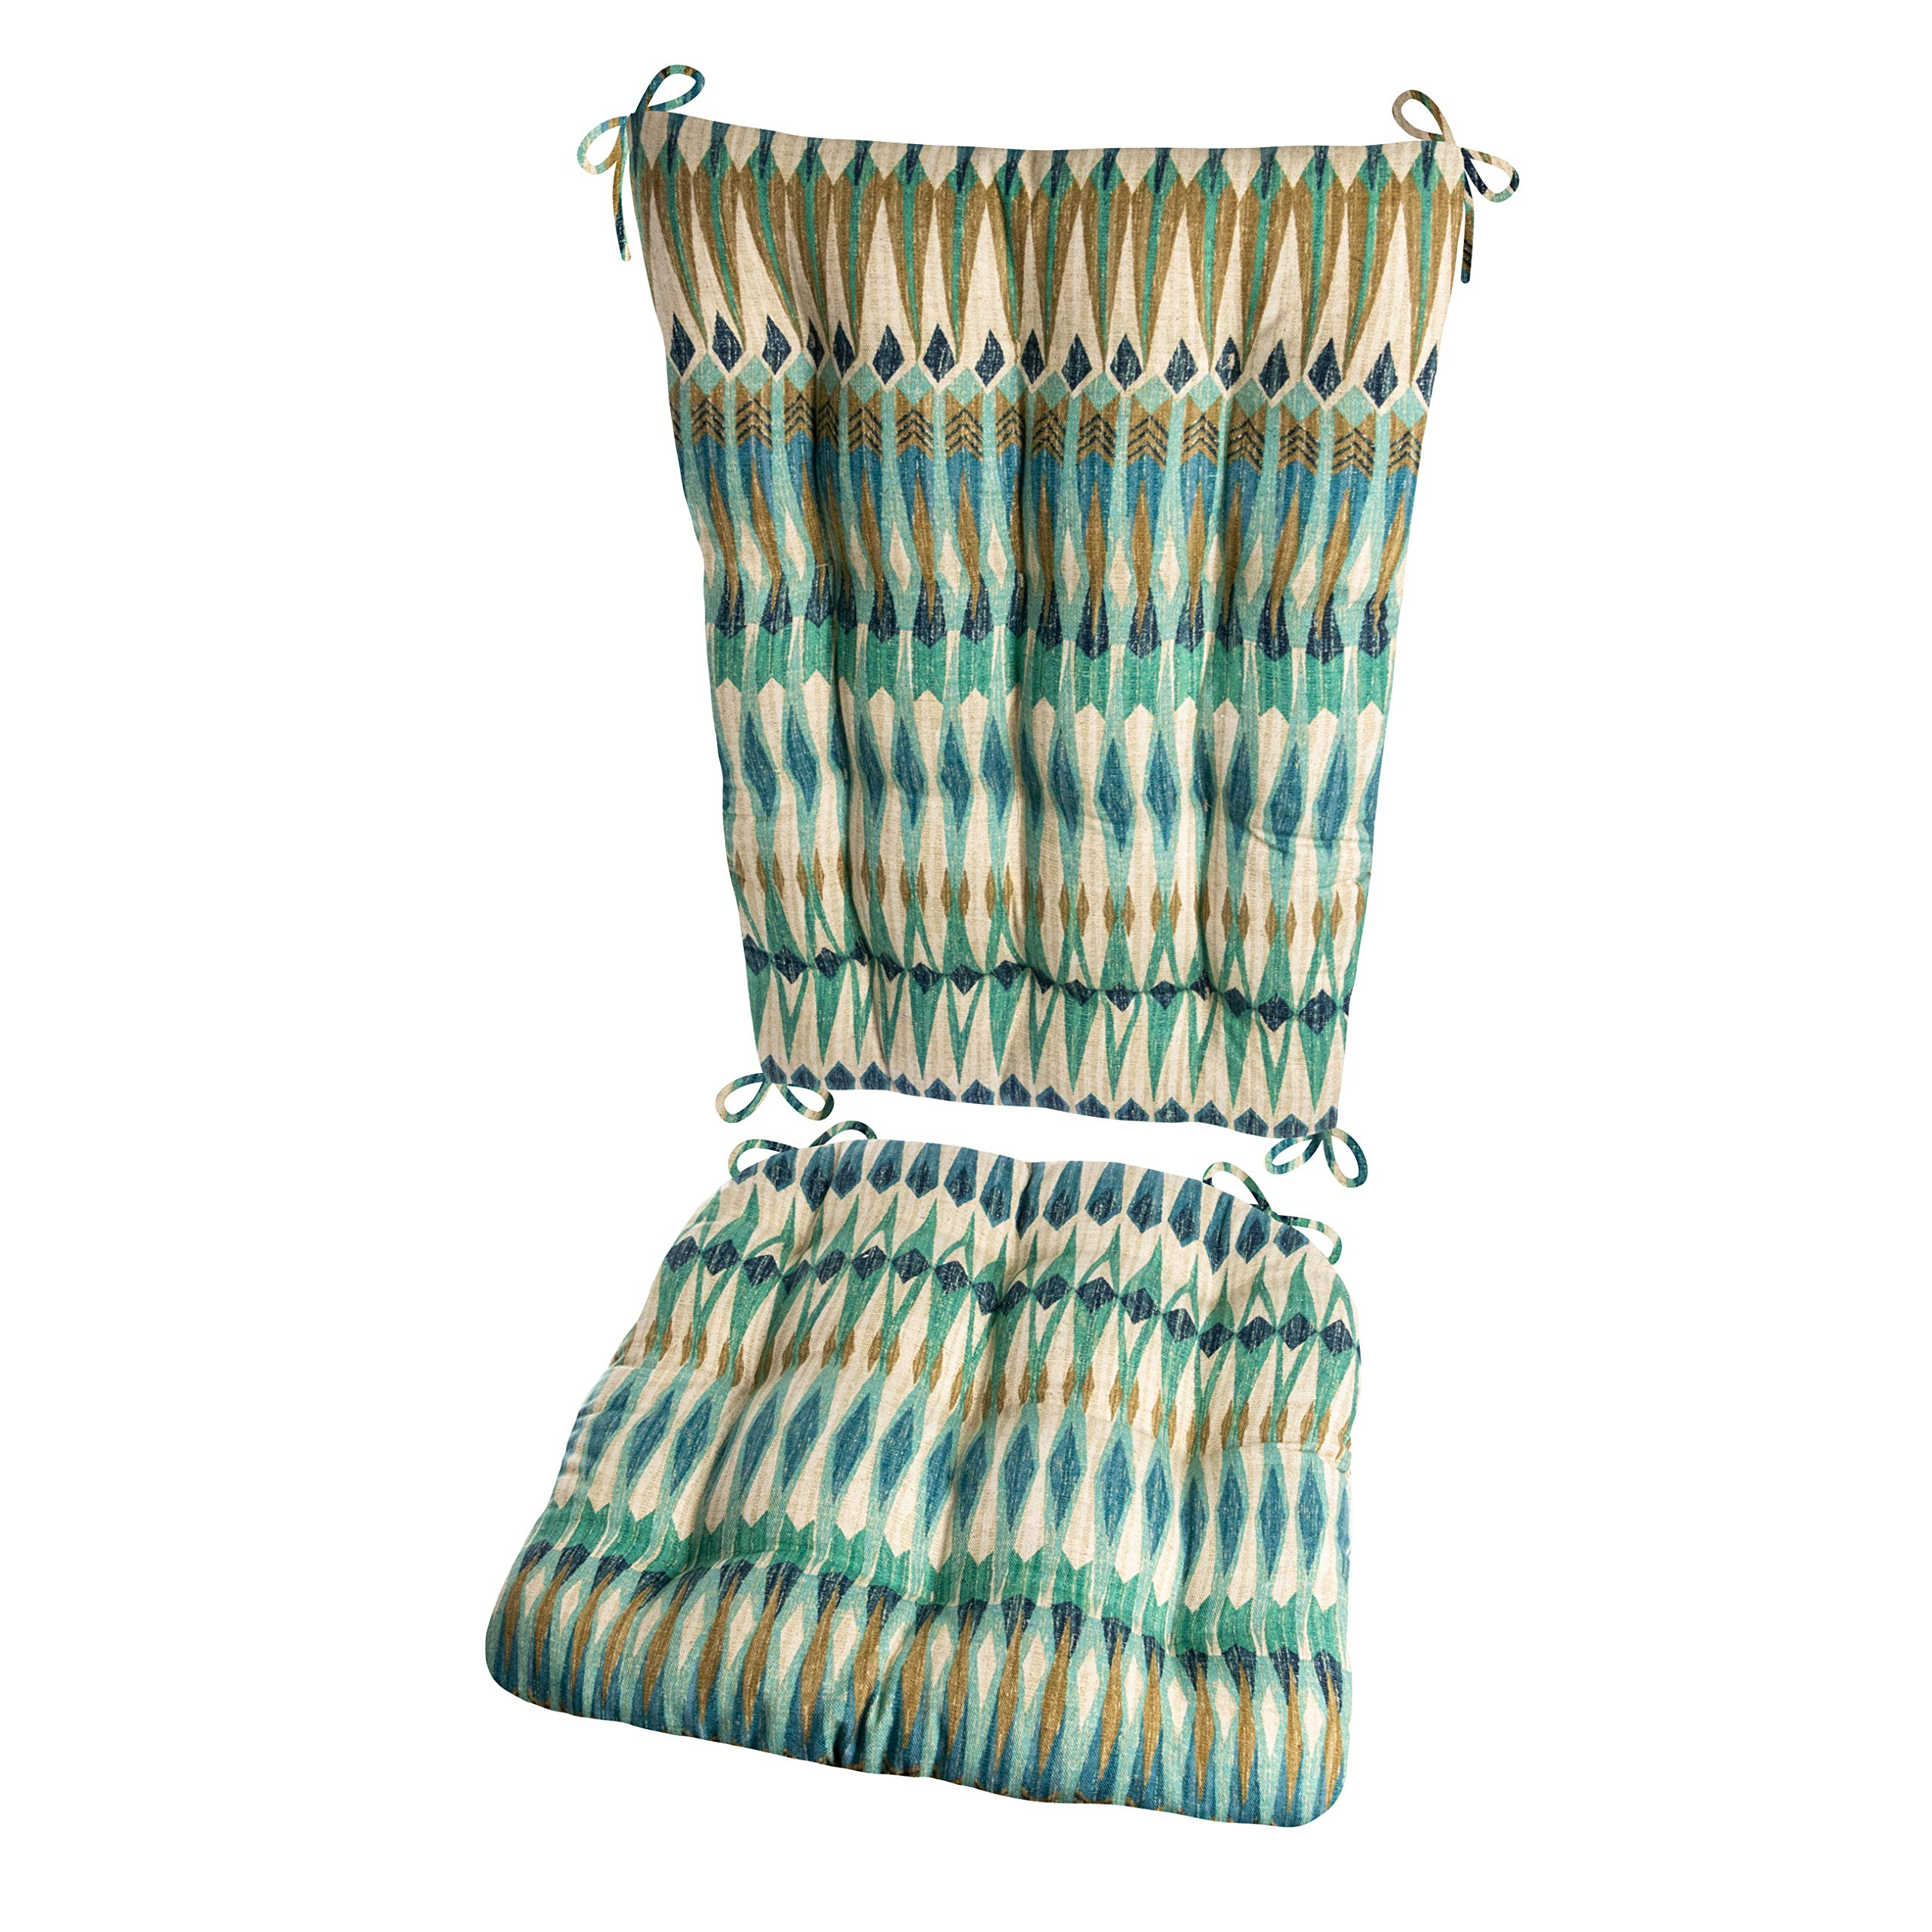 Barnett Products Southwest Arapaho Rocking Chair Cushions - Size Extra-Large - Seat Cushion and Back Rest - Latex Foam Fill (Presidential, Green/Teal Eagle Feathers) by Barnett Products (Image #1)